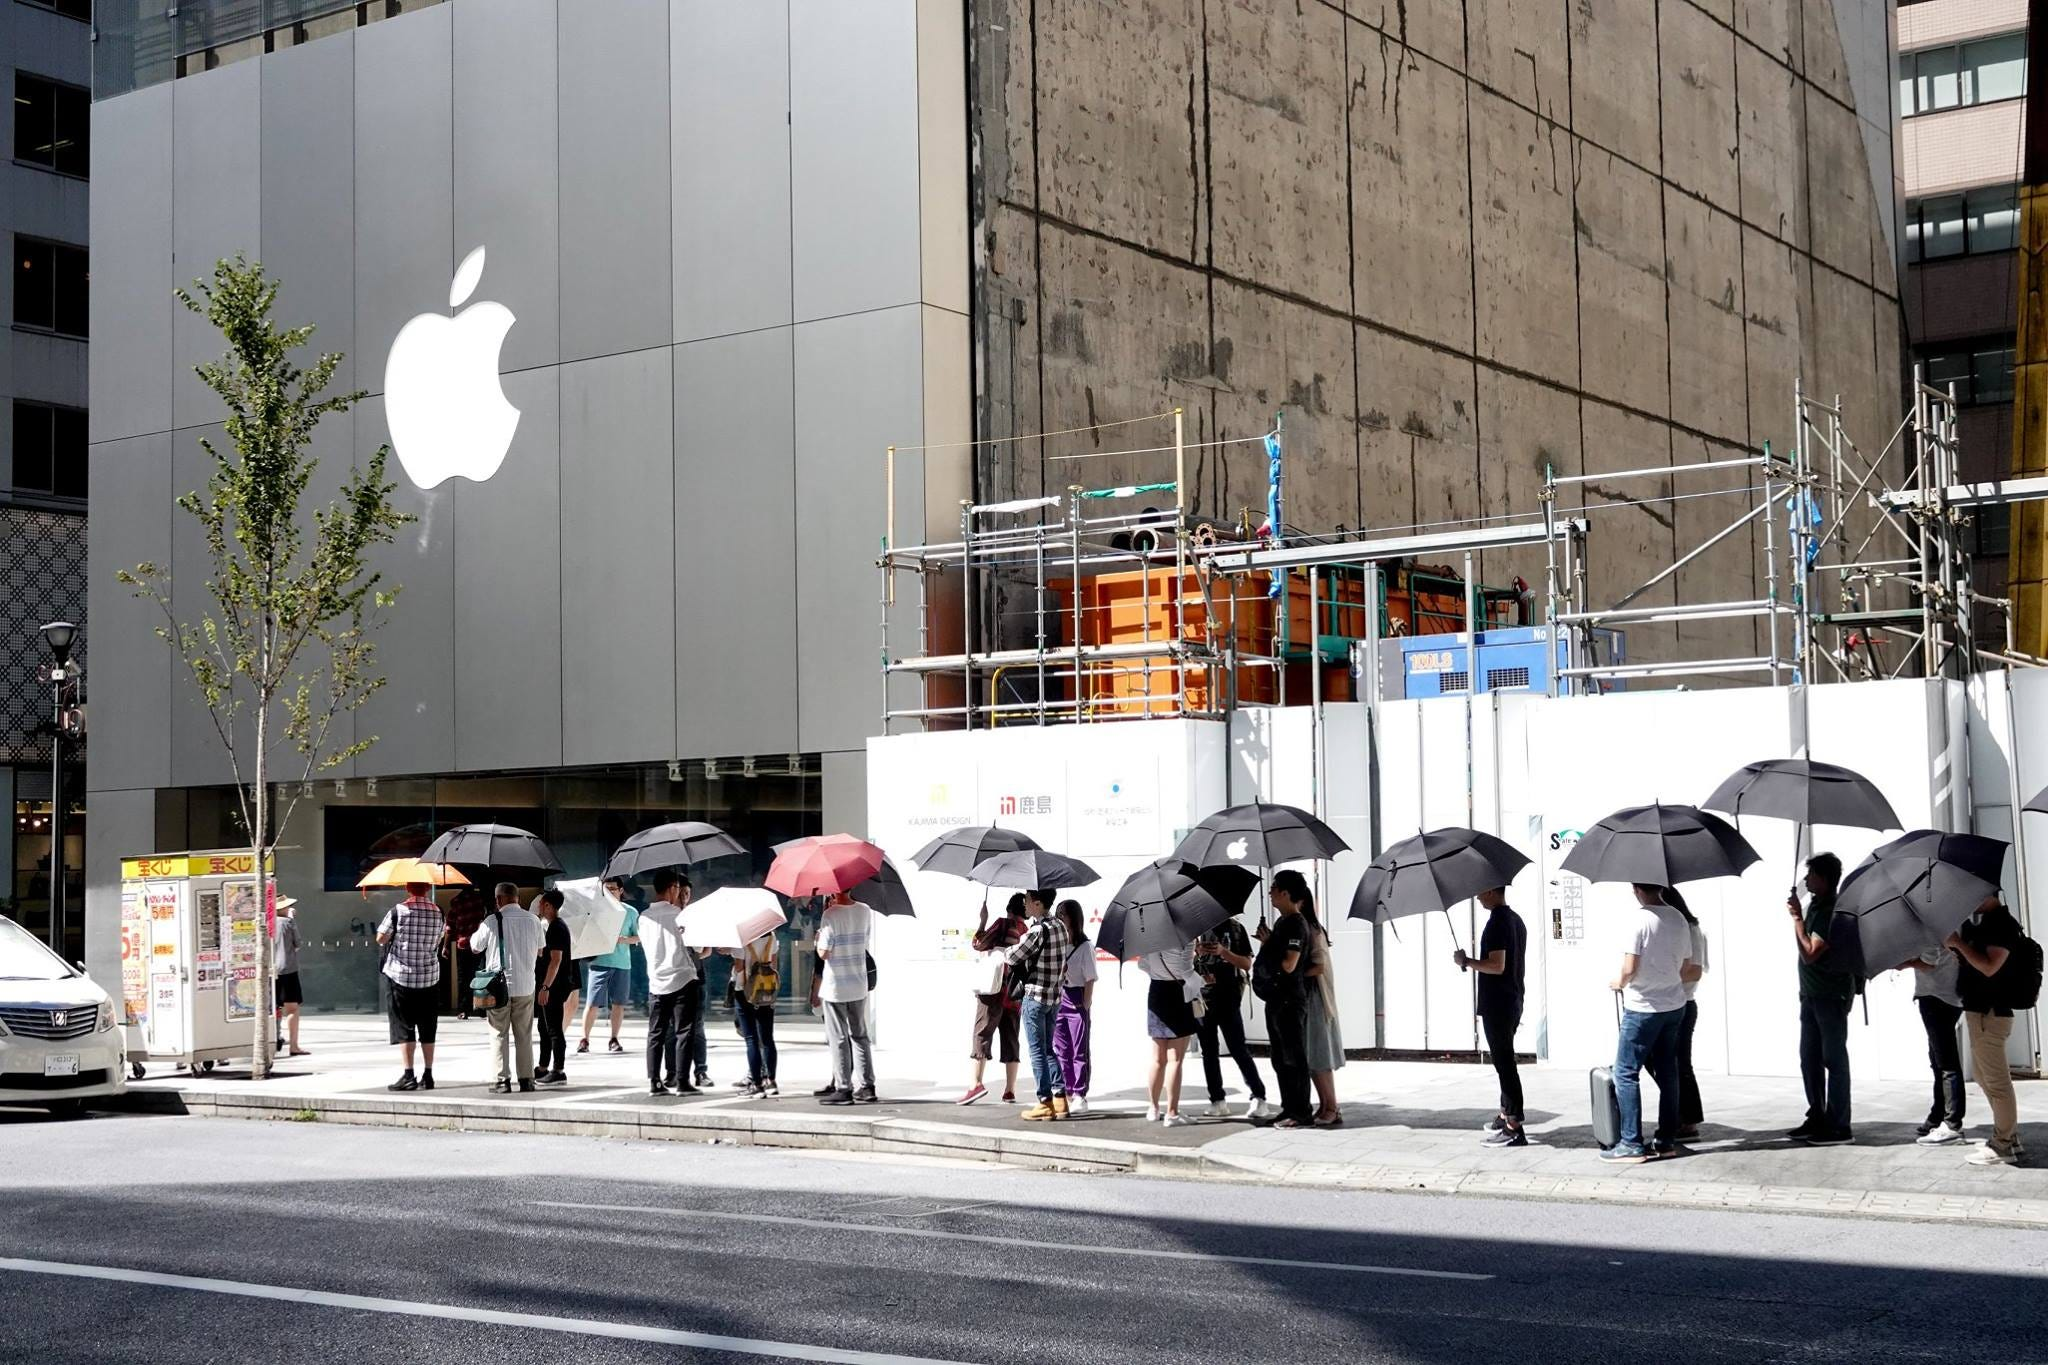 Apple's new iPhone is finally coming. Are you excited yet?